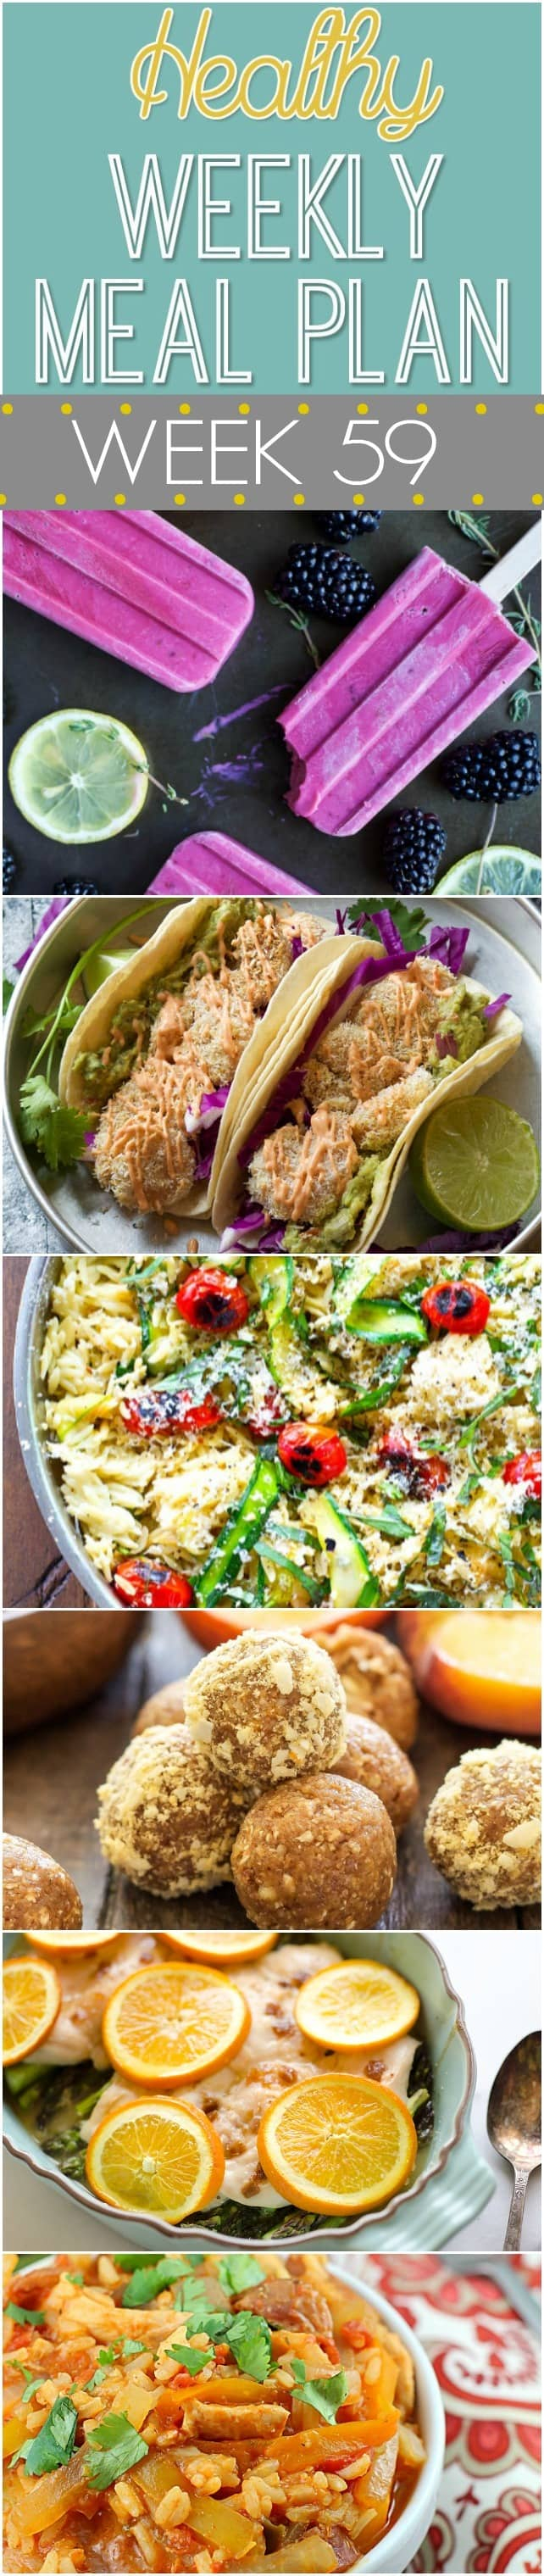 Healthy Weekly Meal Plan #59 - plan out your healthy dinner recipes for the week! Plus a healthy breakfast, lunch, side dish, snack and dessert recipe, too! So many yummy recipes in this week's meal plan!